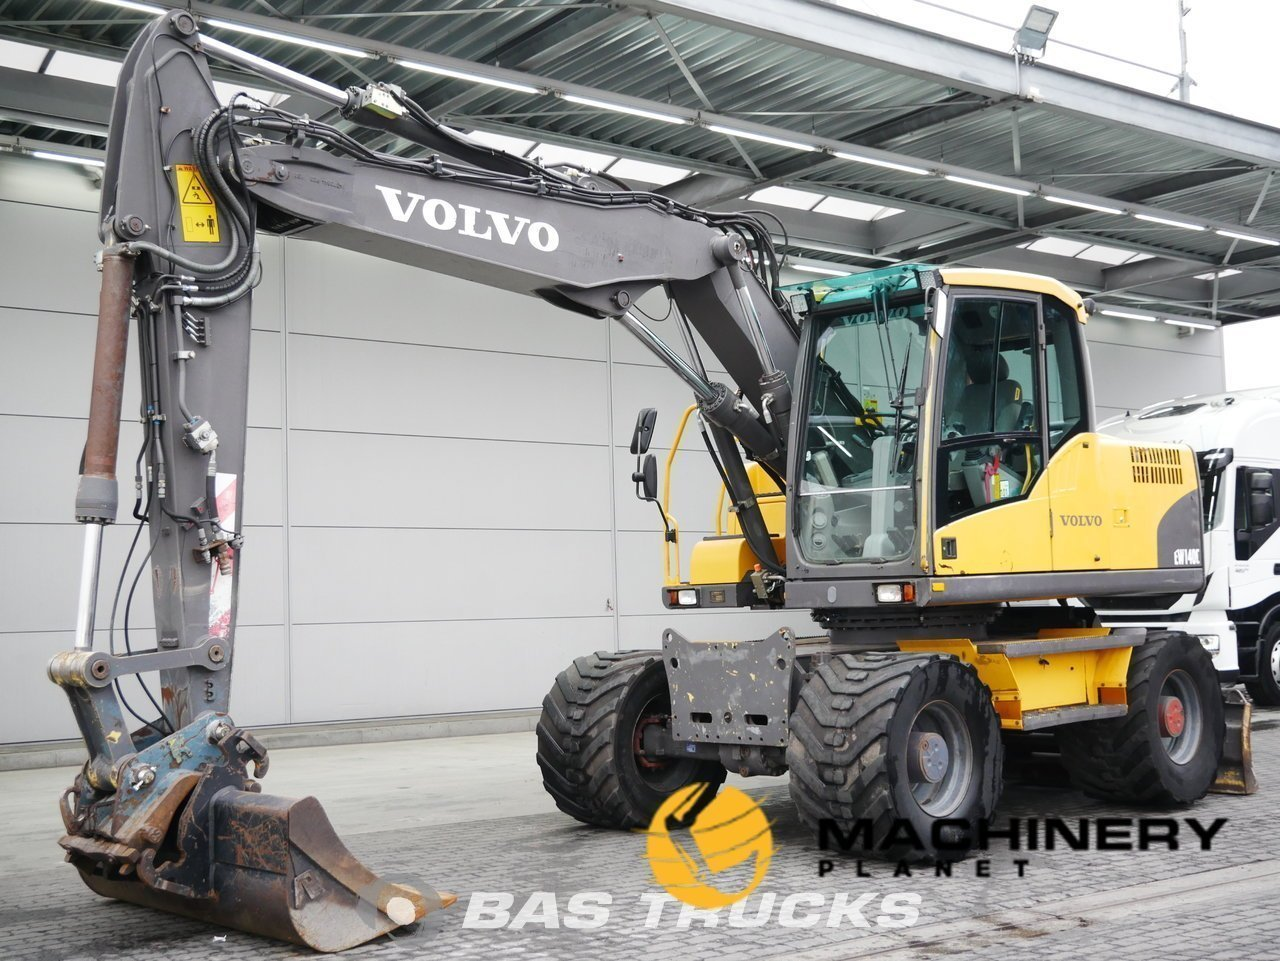 Used-Construction-equipment-Volvo-EW140C-4X4-2007_144533_1-1554203093905_5ca341d5dce33-1.jpg